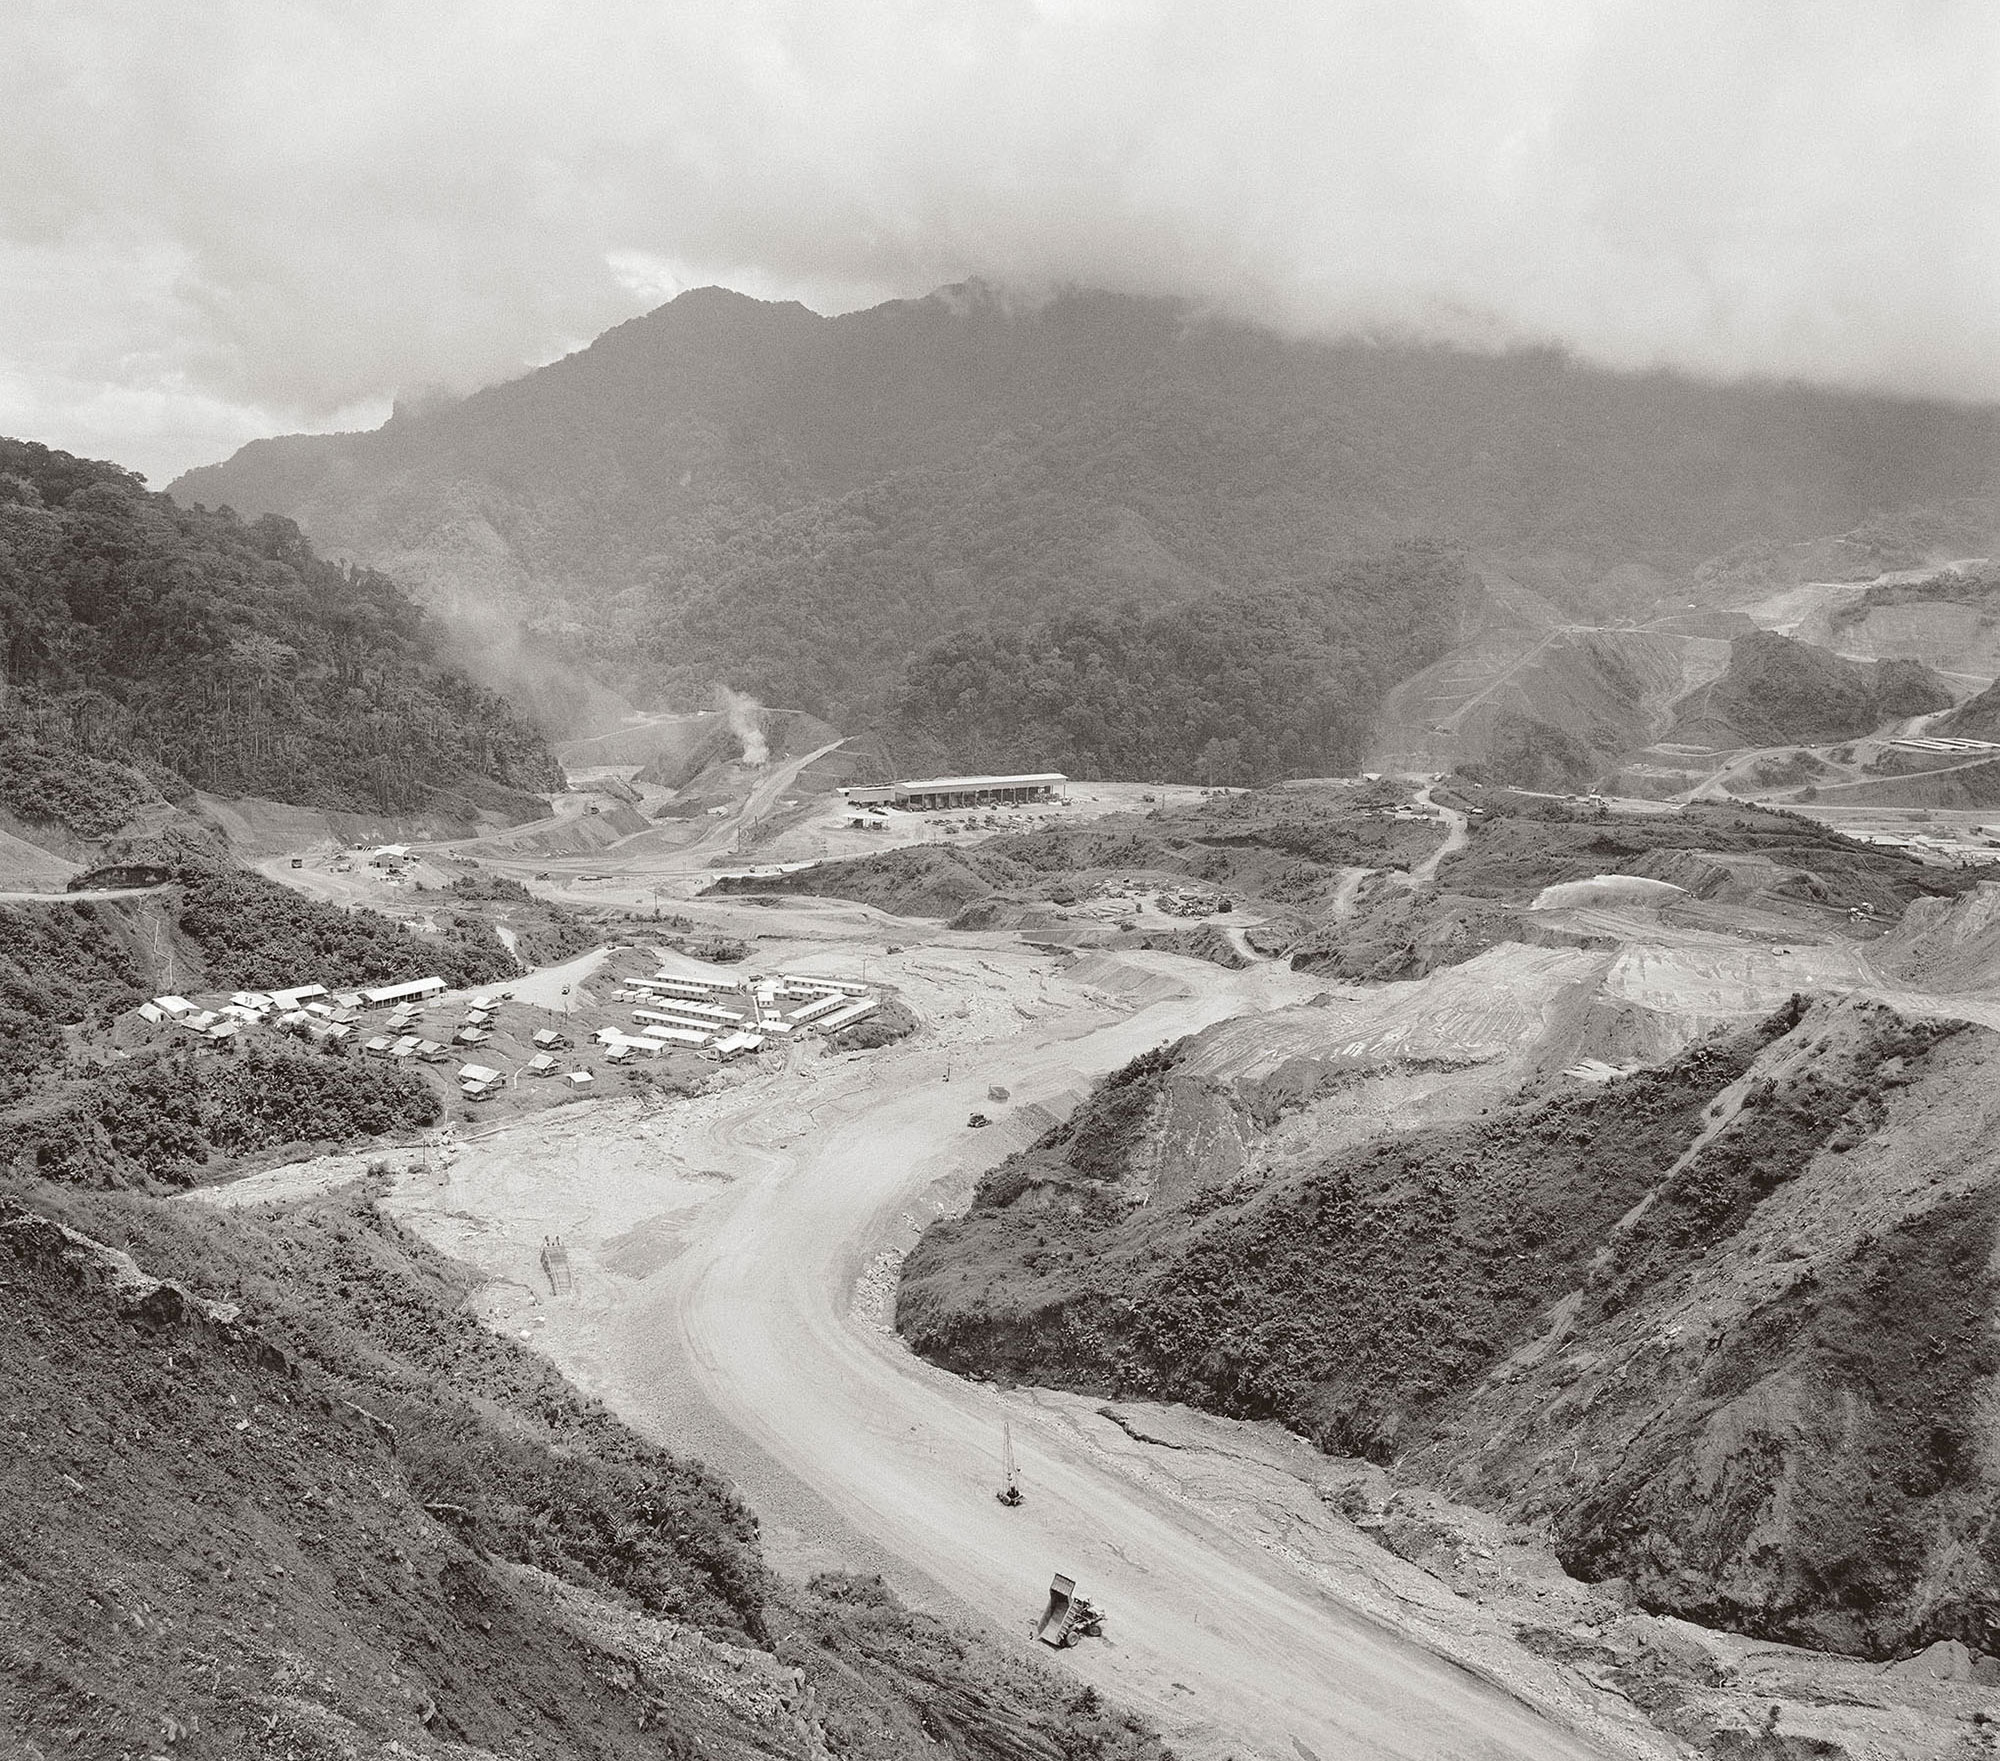 Bougainville Copper Mine project on the island of Bougainville,1971. Photographer unknown. Collection of the National Archives of Australia.